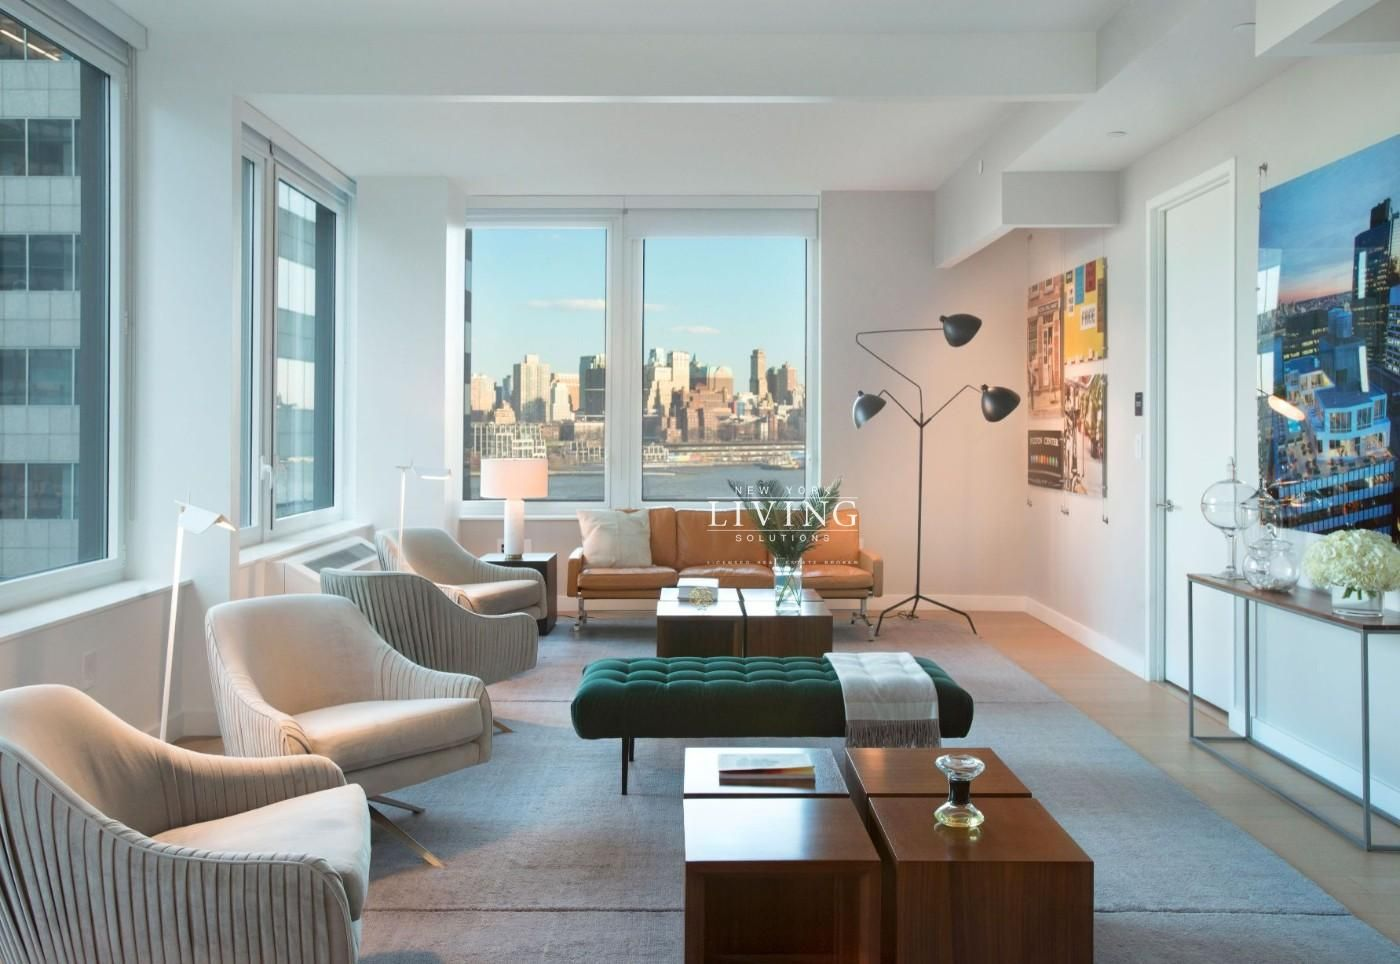 4 Bedrooms 3 Bathrooms Apartment For Sale In Financial District Apartments For Rent Apartments For Sale 4 Bedroom Apartments